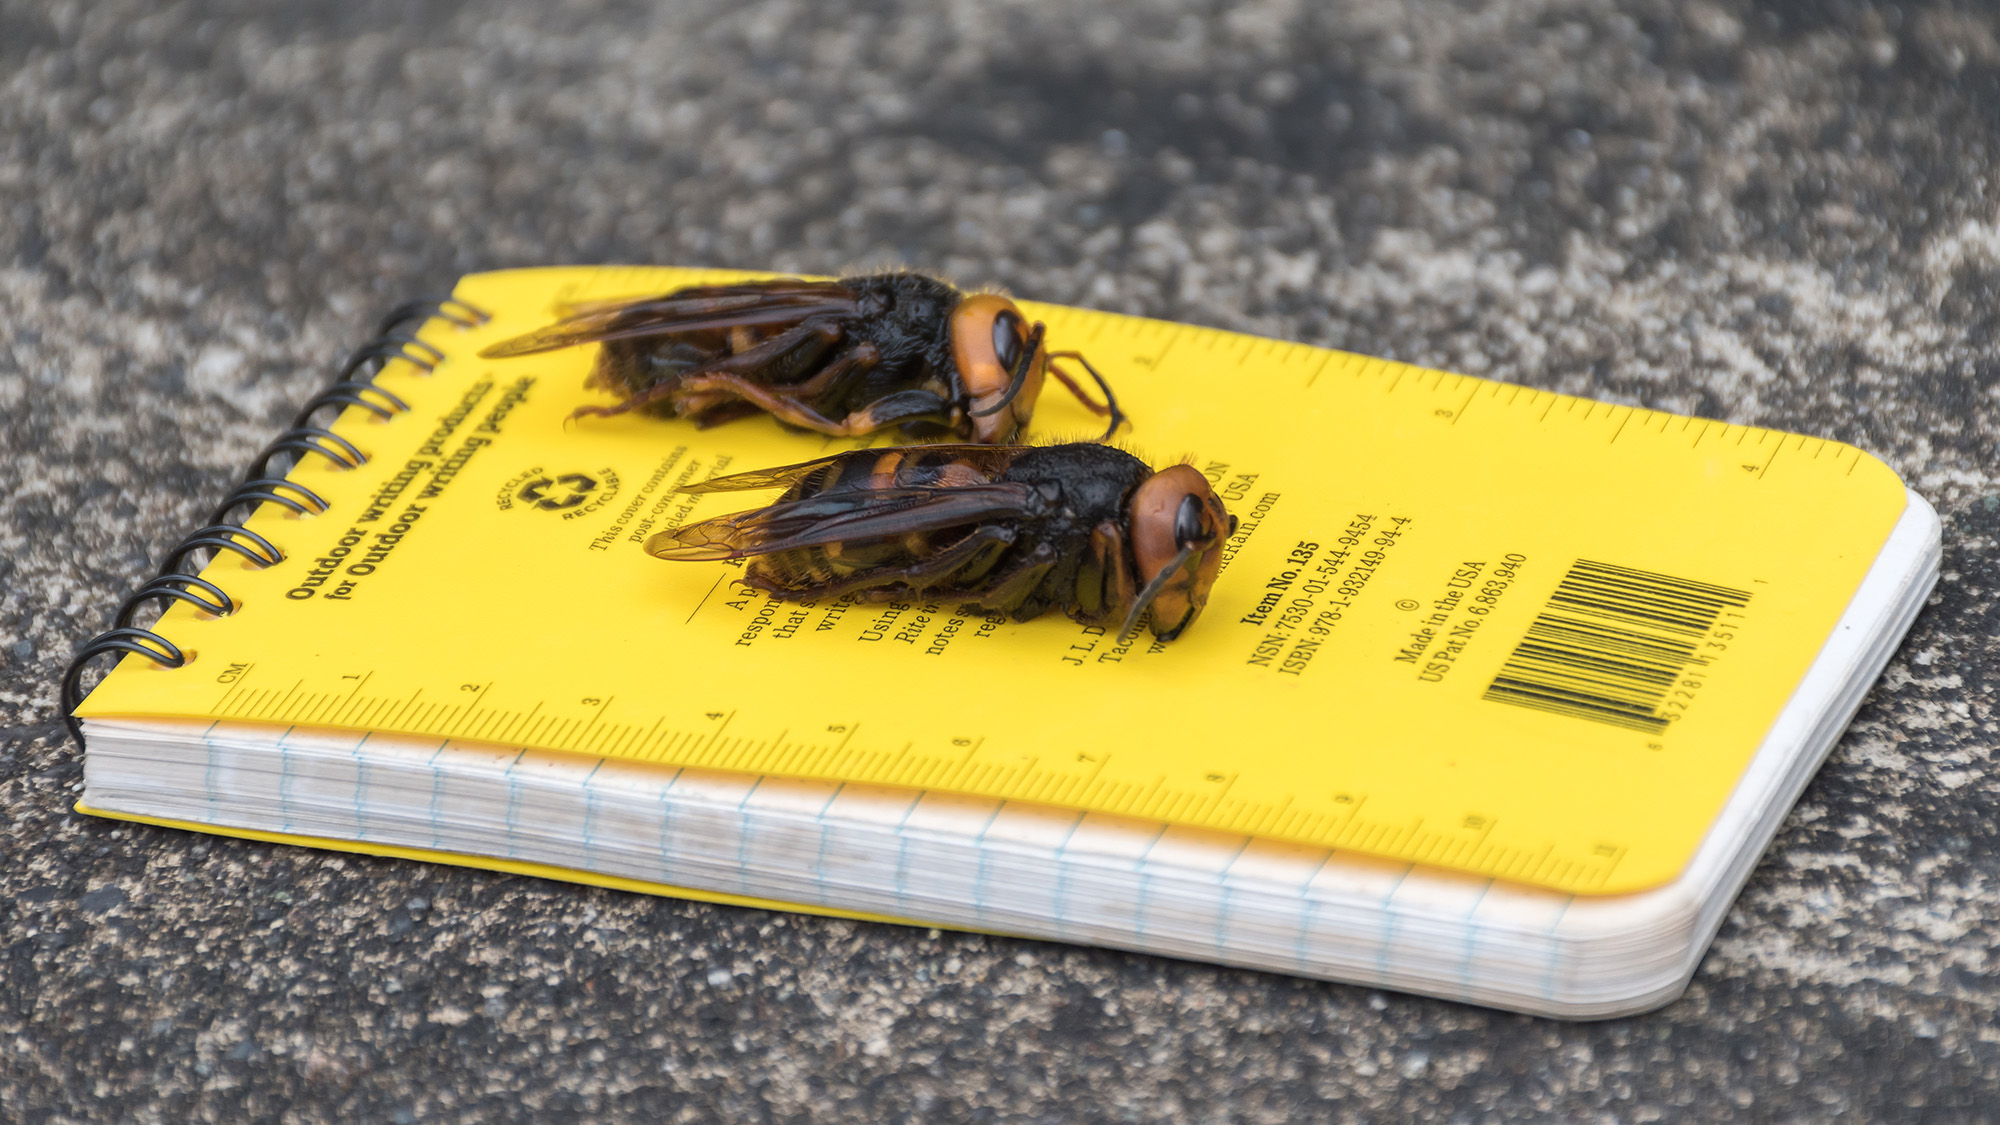 Asian giant hornets on a field notebook.